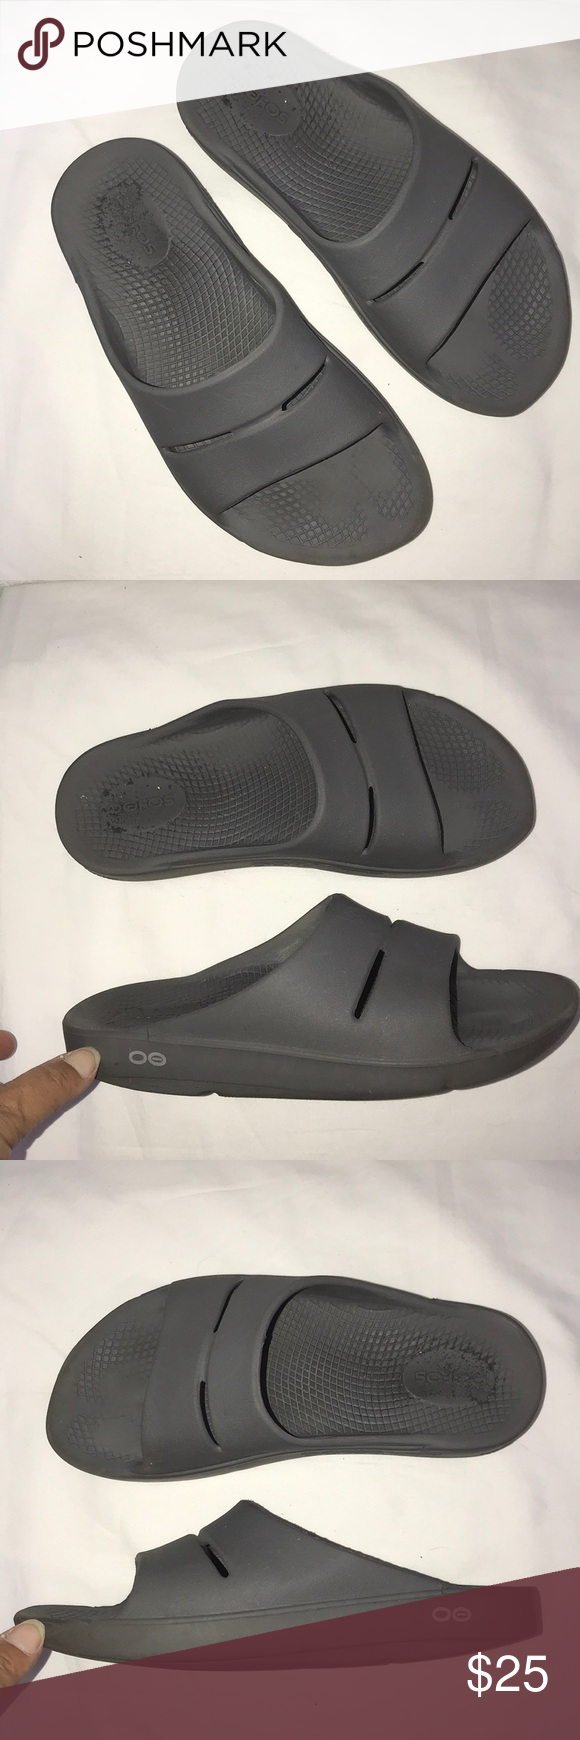 Oofos Recovery Slides Women Shoes Women Shopping Women S Shoes Sandals